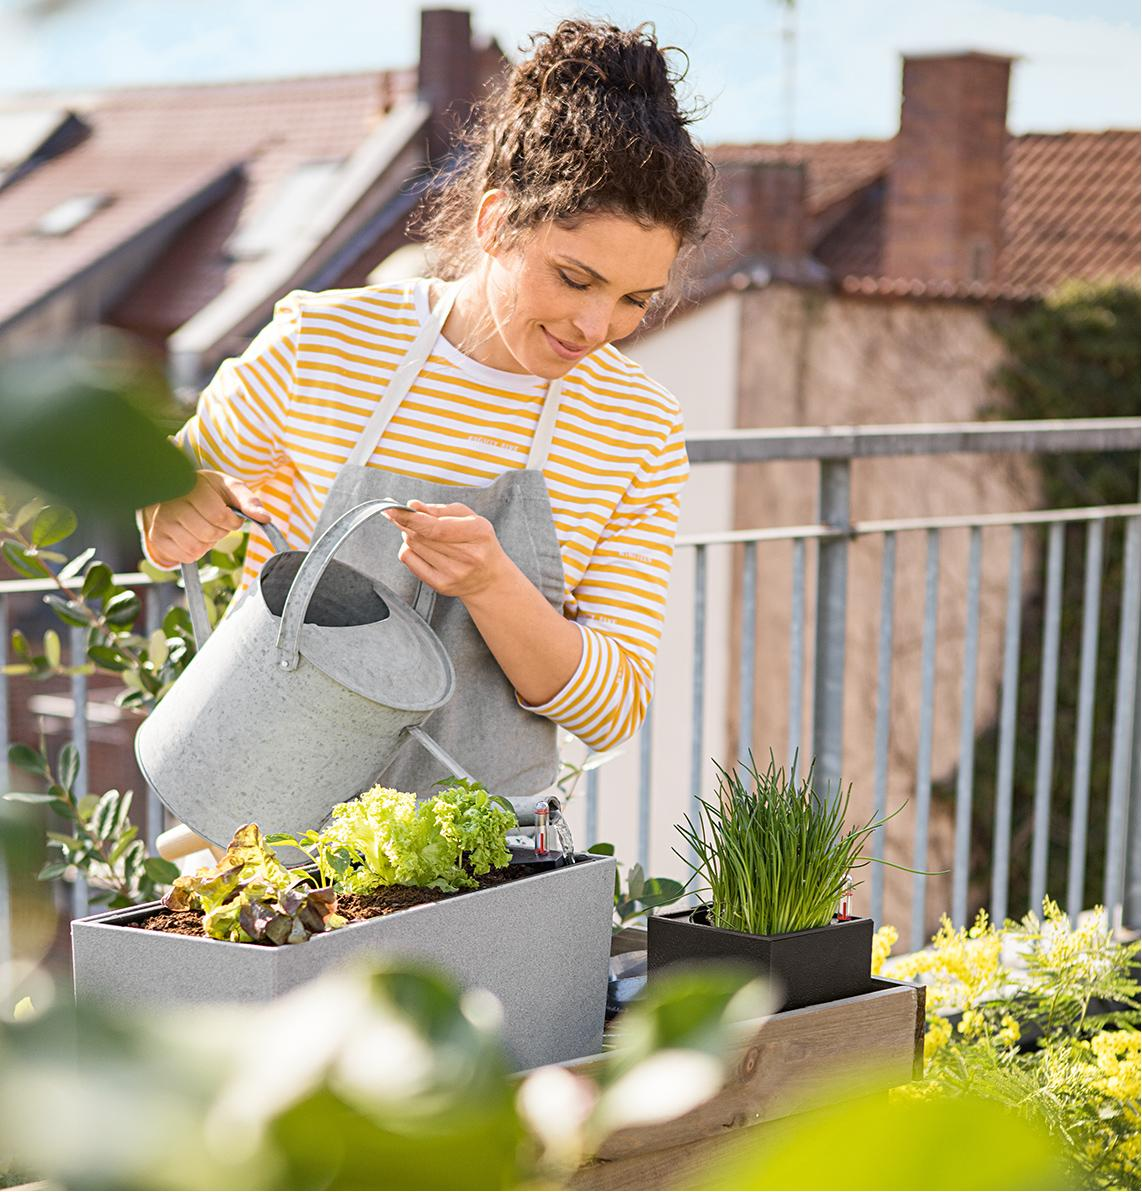 A woman waters her planted salad